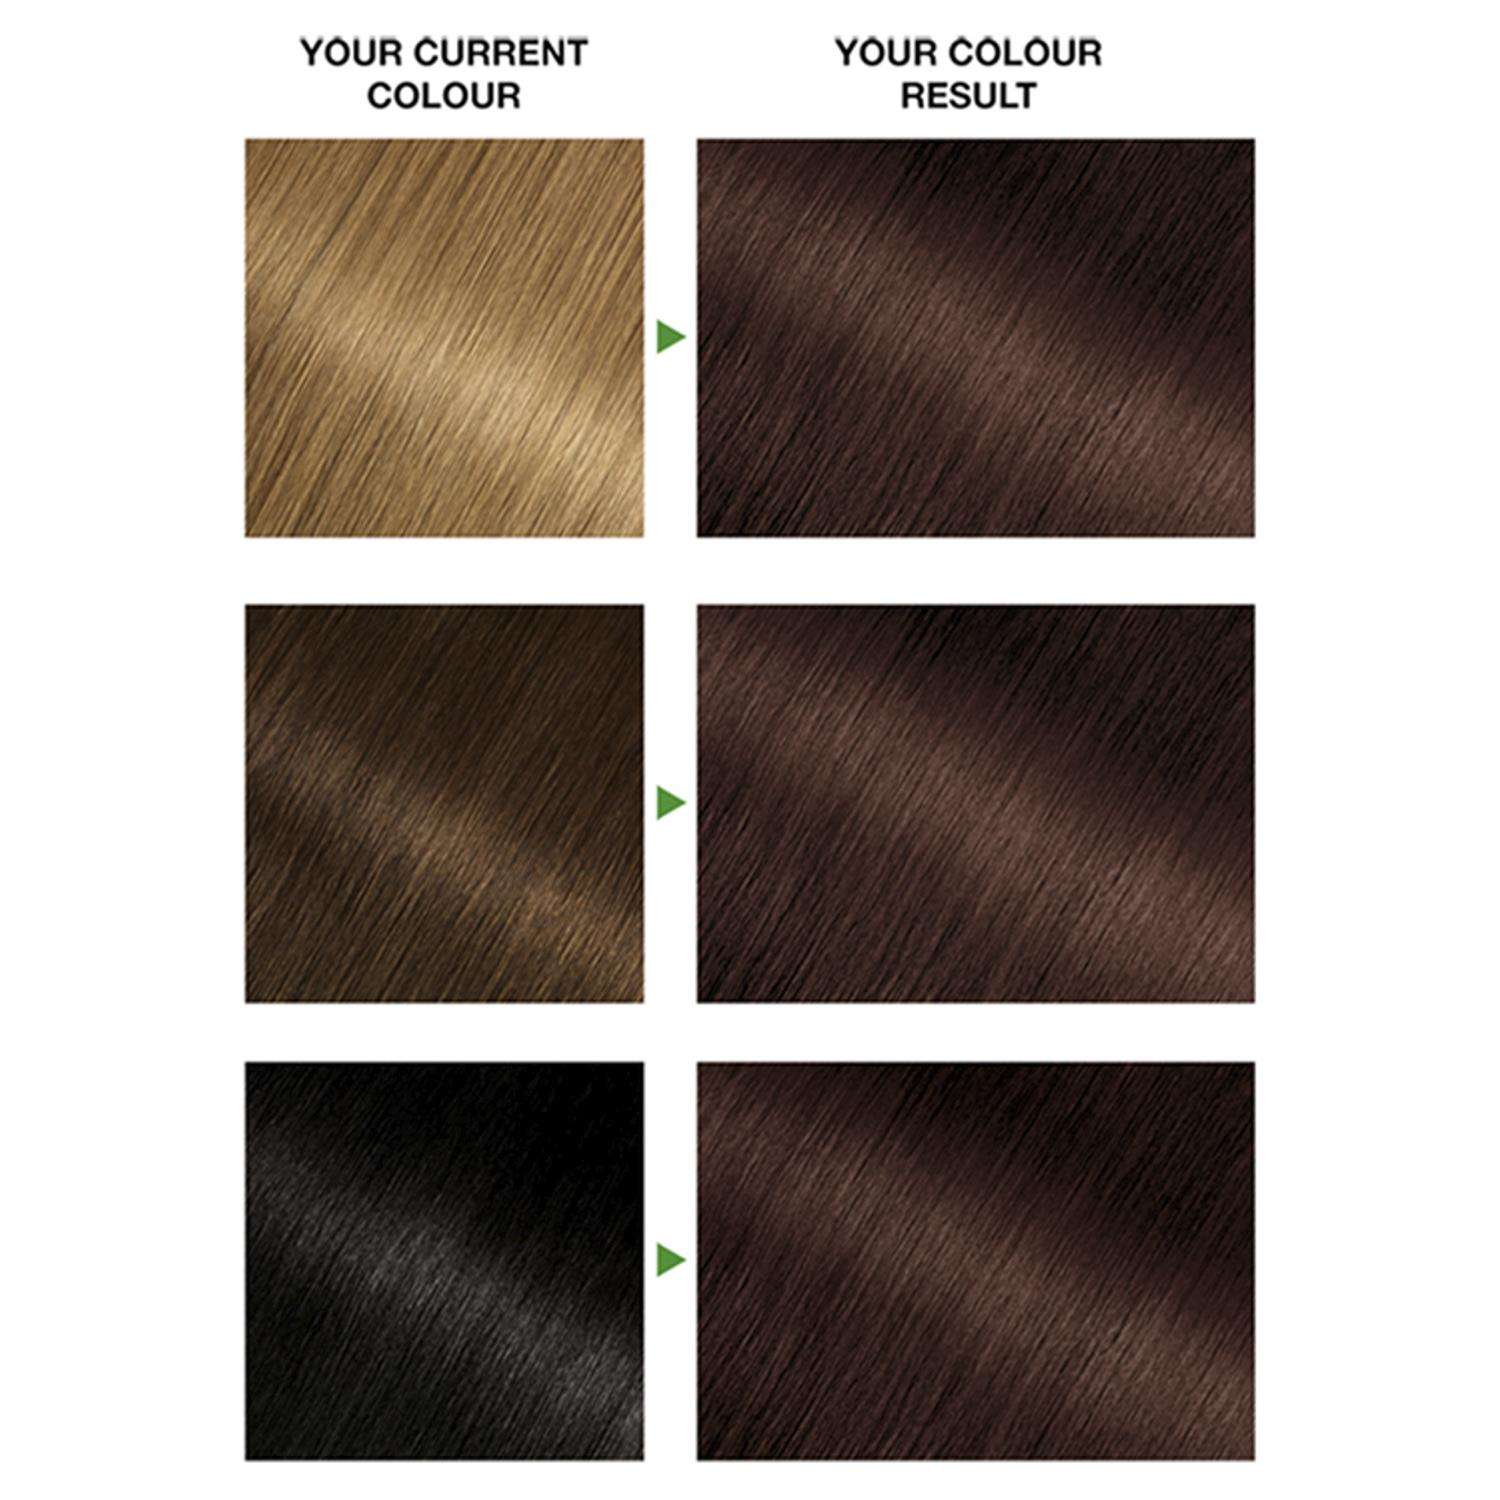 thumbnail 27 - 3 Pack Garnier Nutrisse Permanent Hair Dye With Different Shades